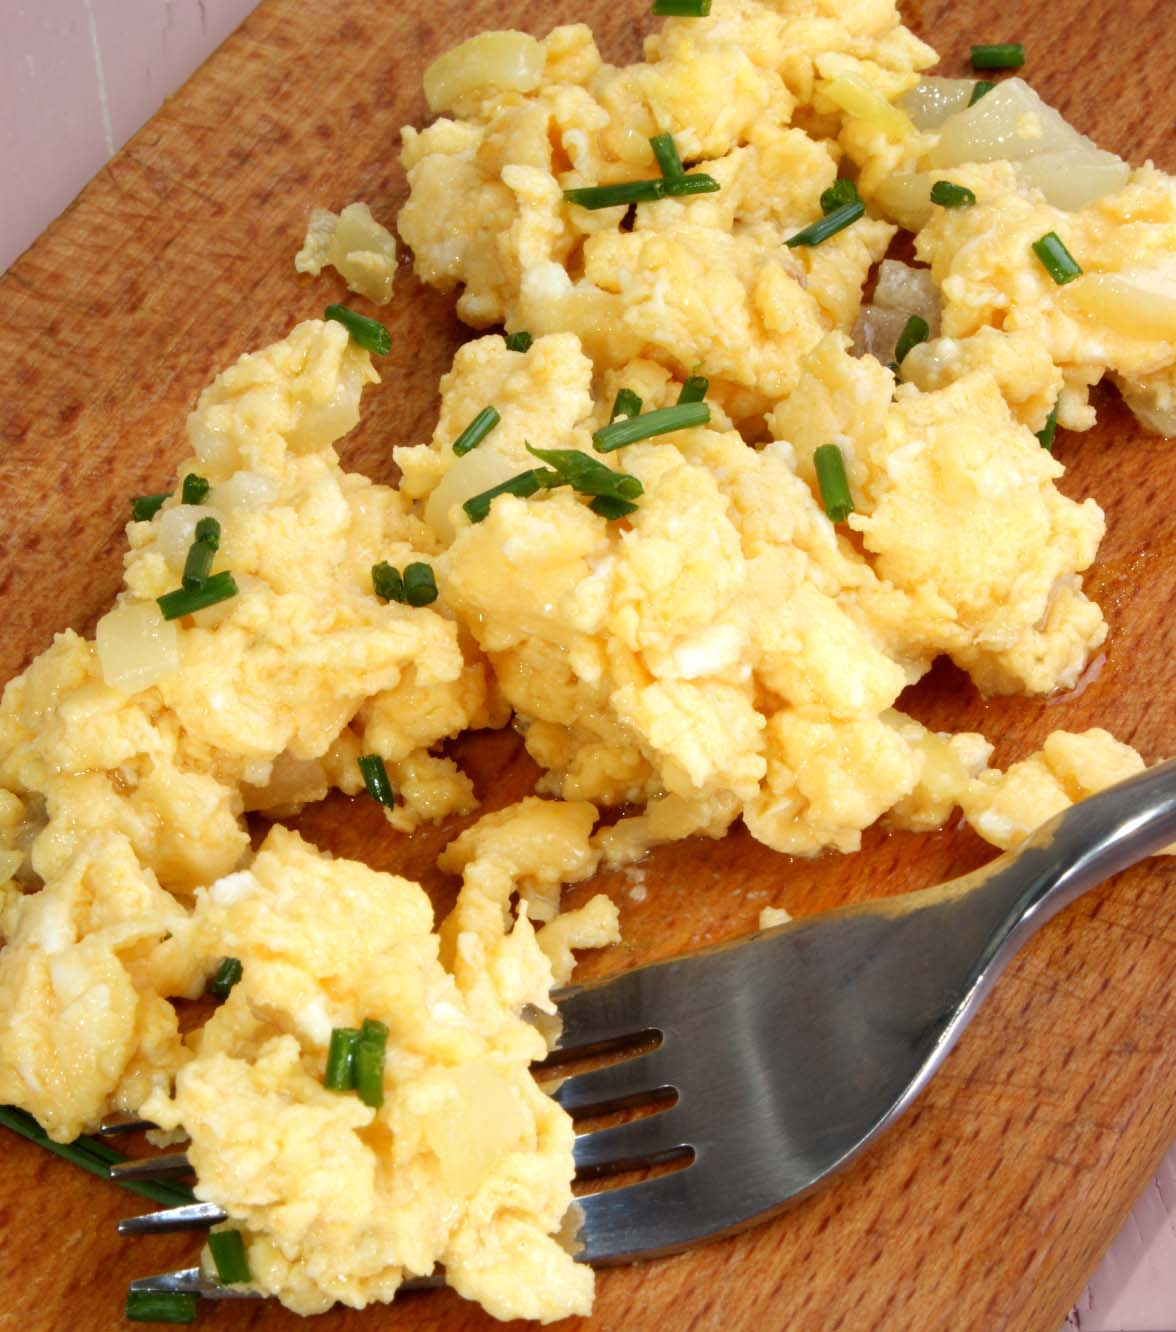 scrambled duck eggs with fine herbs on a wooden board